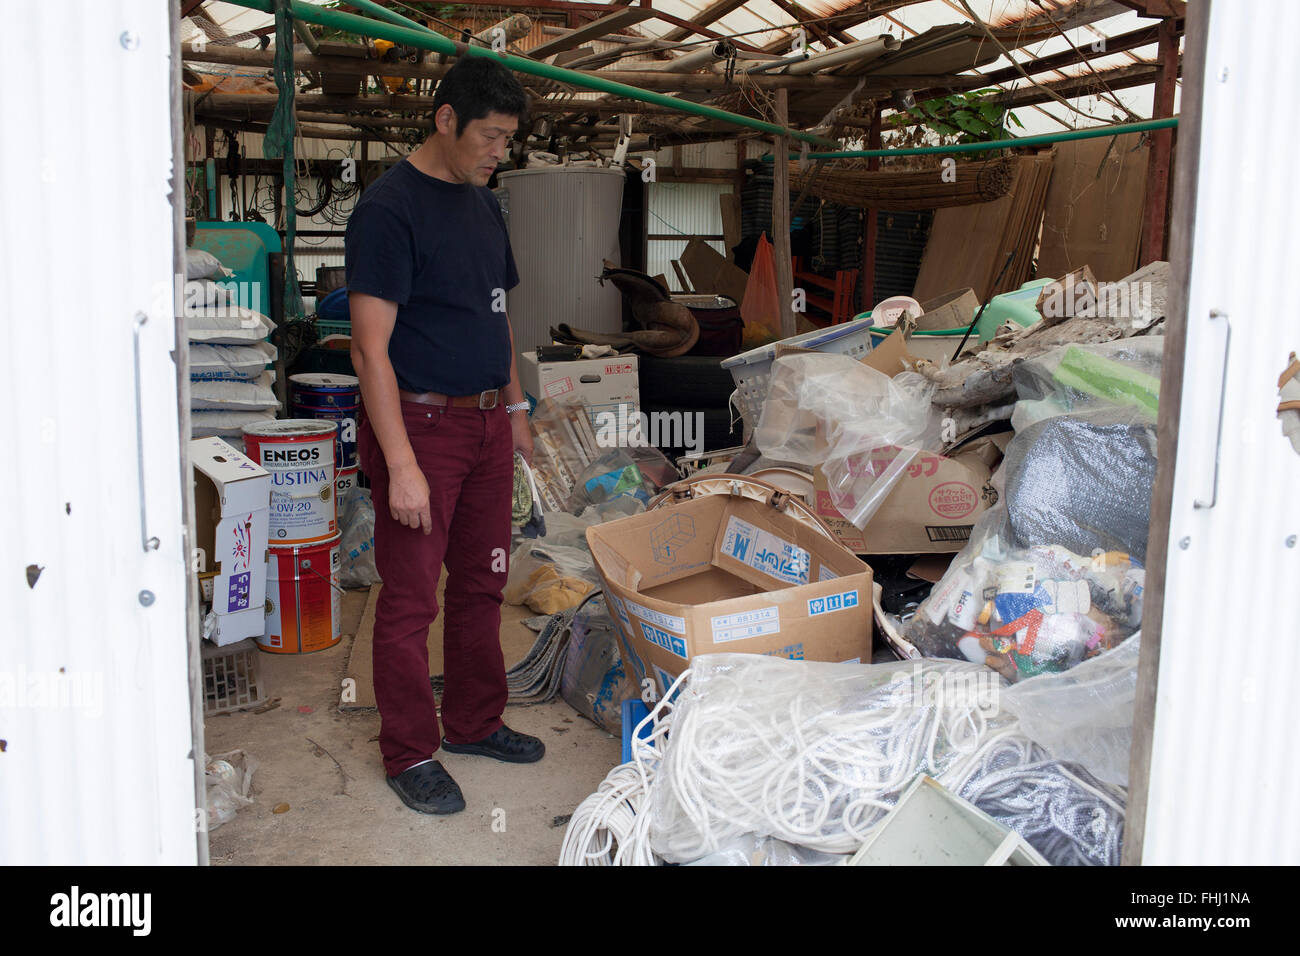 The Fukushima samurais -  Japan / Fukushima  -  The all trash from the decontaminated area are not allowed to be - Stock Image